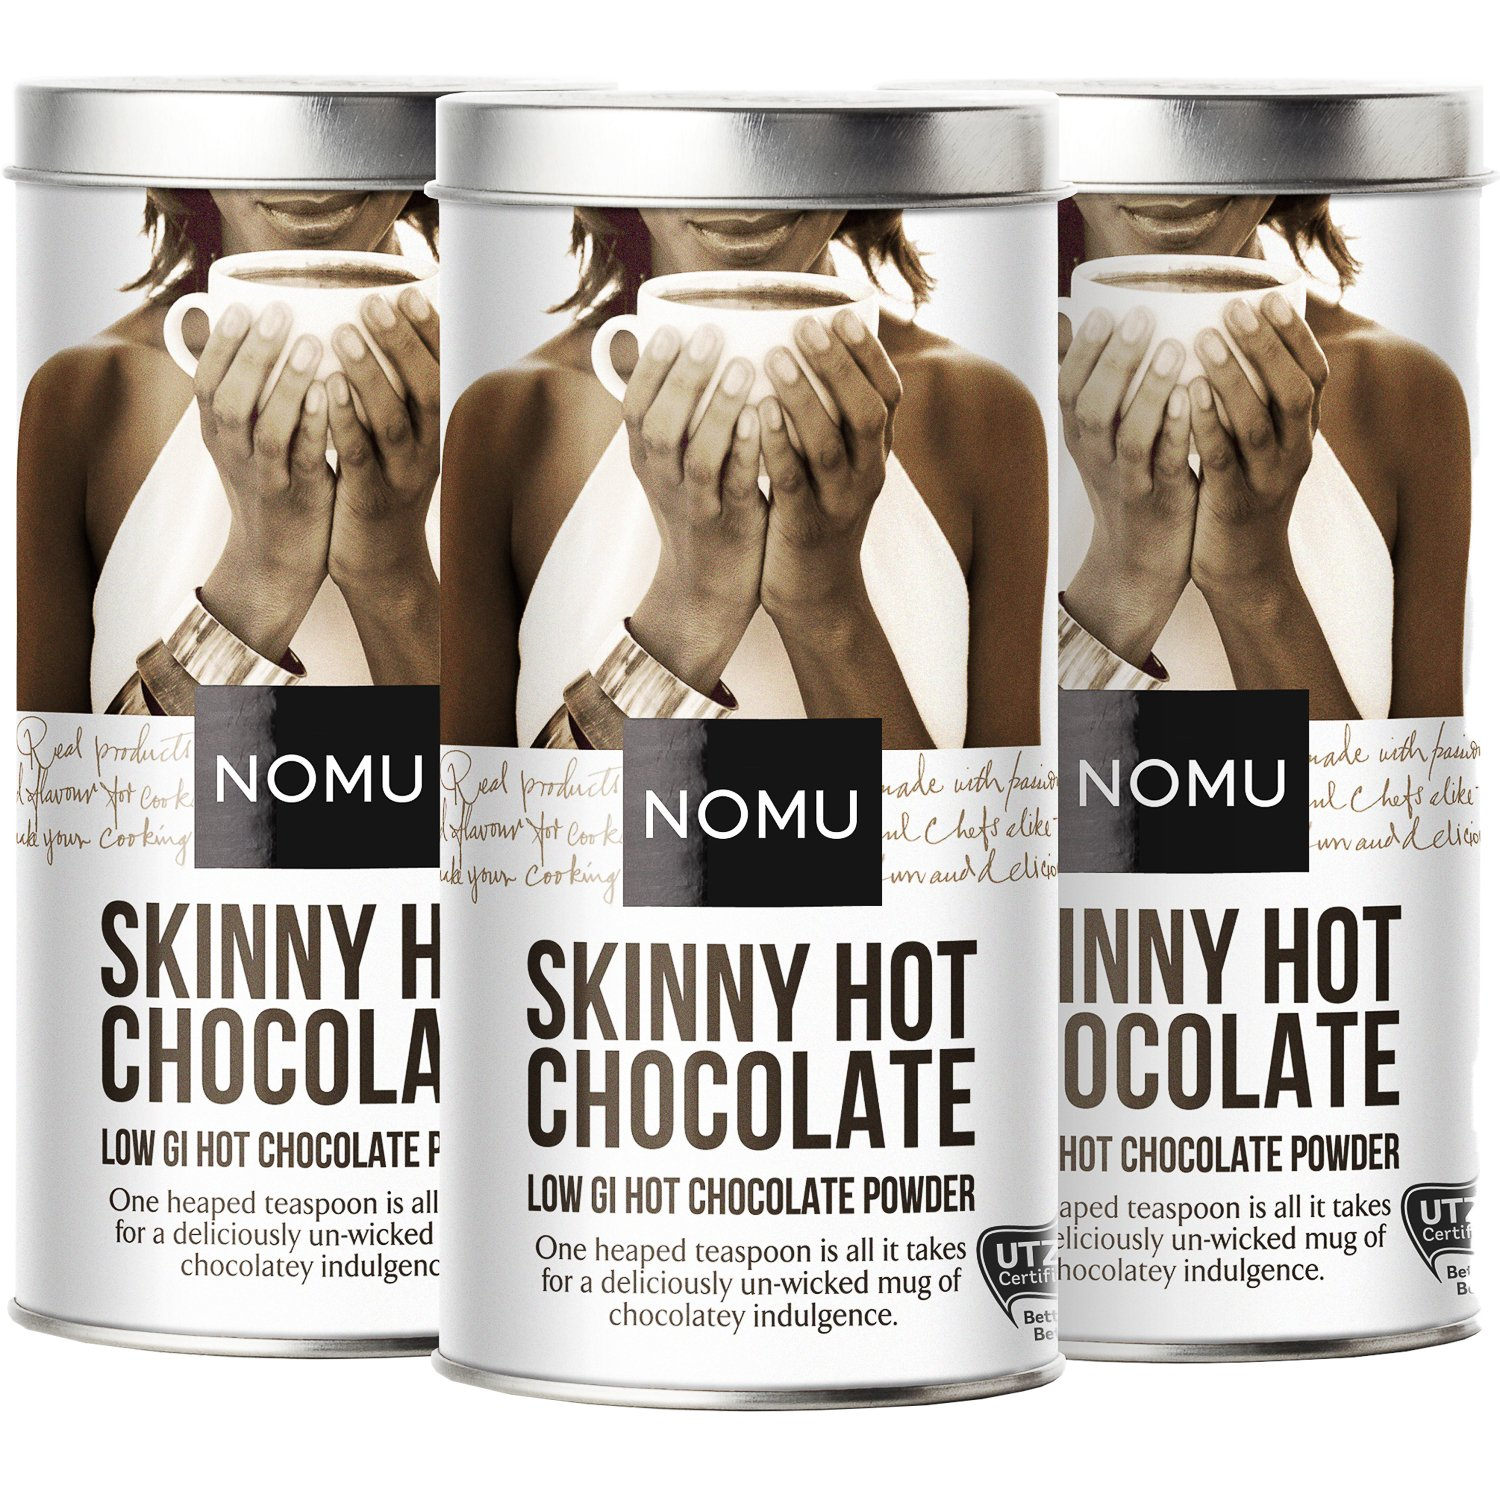 NOMU Skinny 60% Cocoa Hot Chocolate (3-Pack) | Only 20 Calories, High Protein, Low GI, Low Sugar (33 servings each) ...